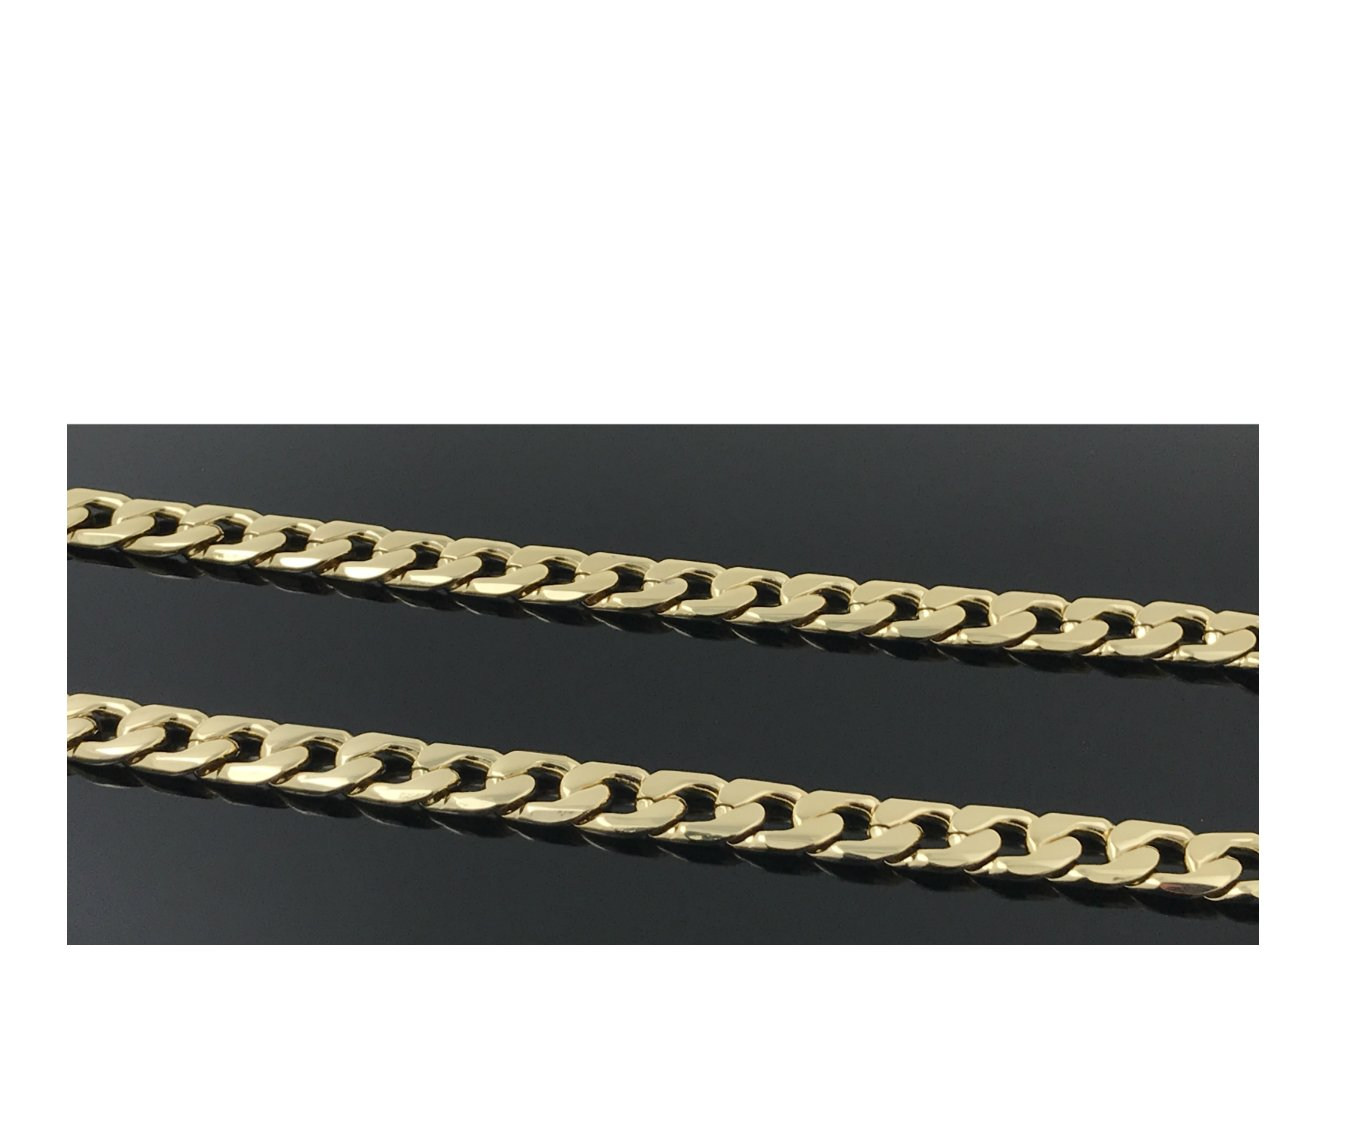 Gold chain necklace 11MM 14K Diamond cut Smooth Cuban Link with a Warranty Of A LifeTime USA Made! (30) by Unknown (Image #3)